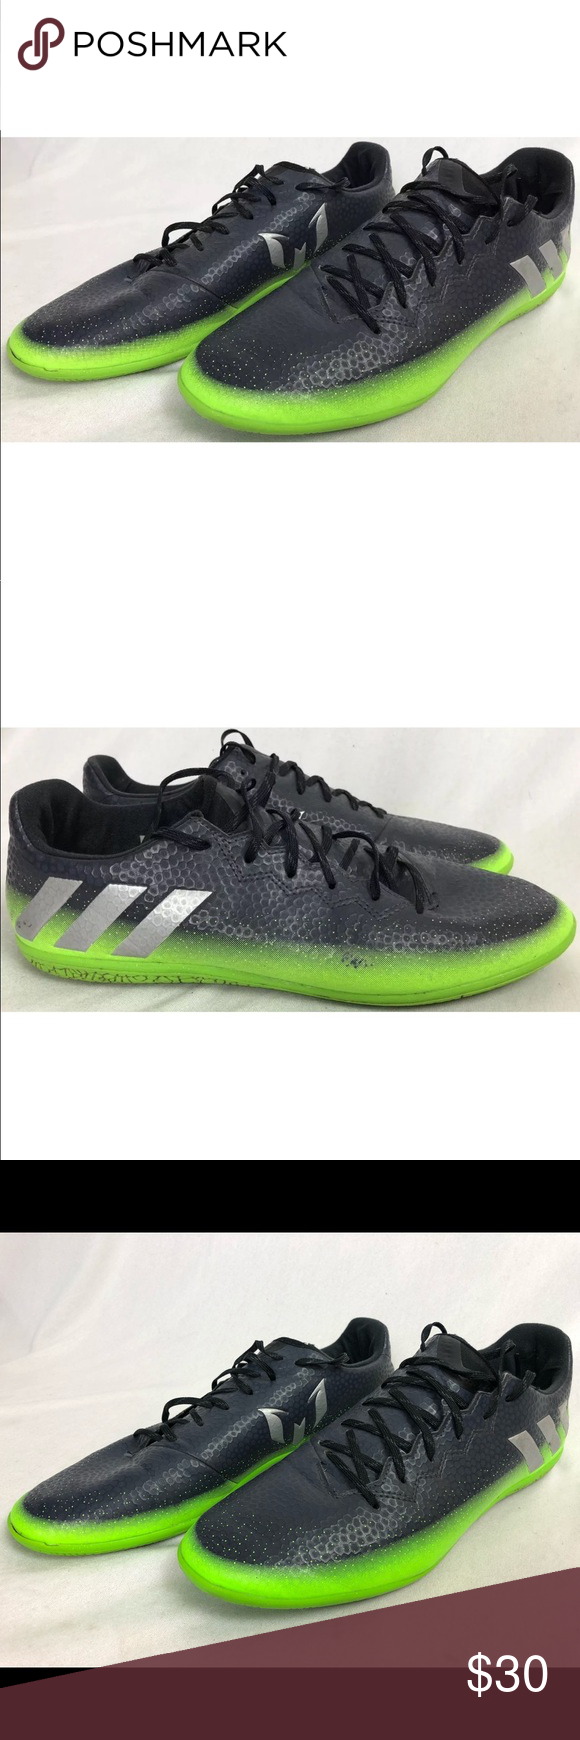 Adidas Men S 10 5 M Indoor Soccer Shoes Messi 16 3 You Are Buying A Pair Of Men S Adidas Messi 16 3 Indoor Soccer Shoes Color Black Gre Soccer Shoes Adidas Men